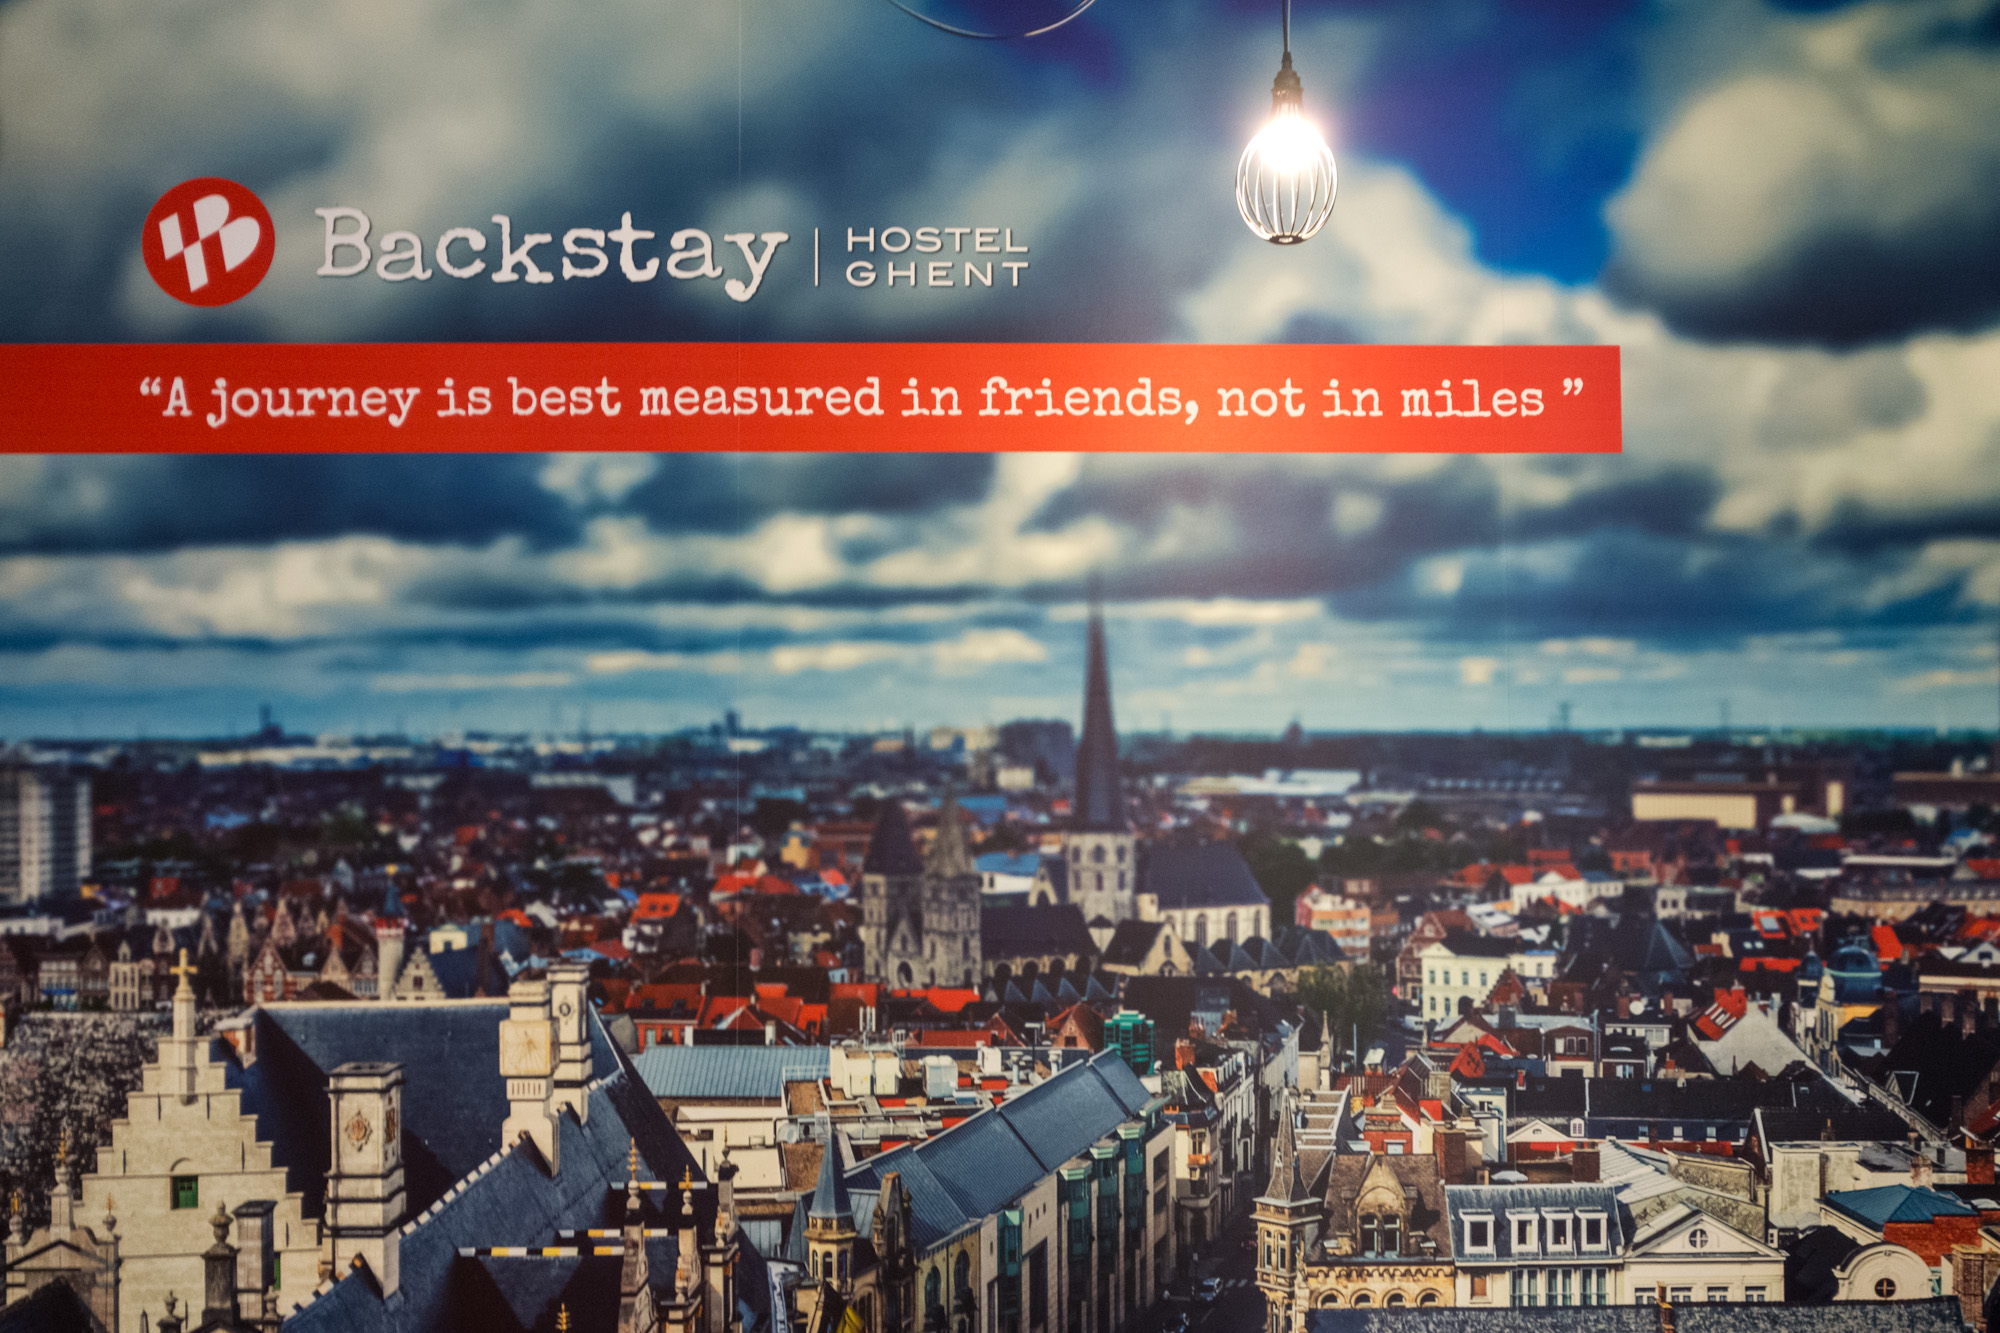 backstay hostel ghent